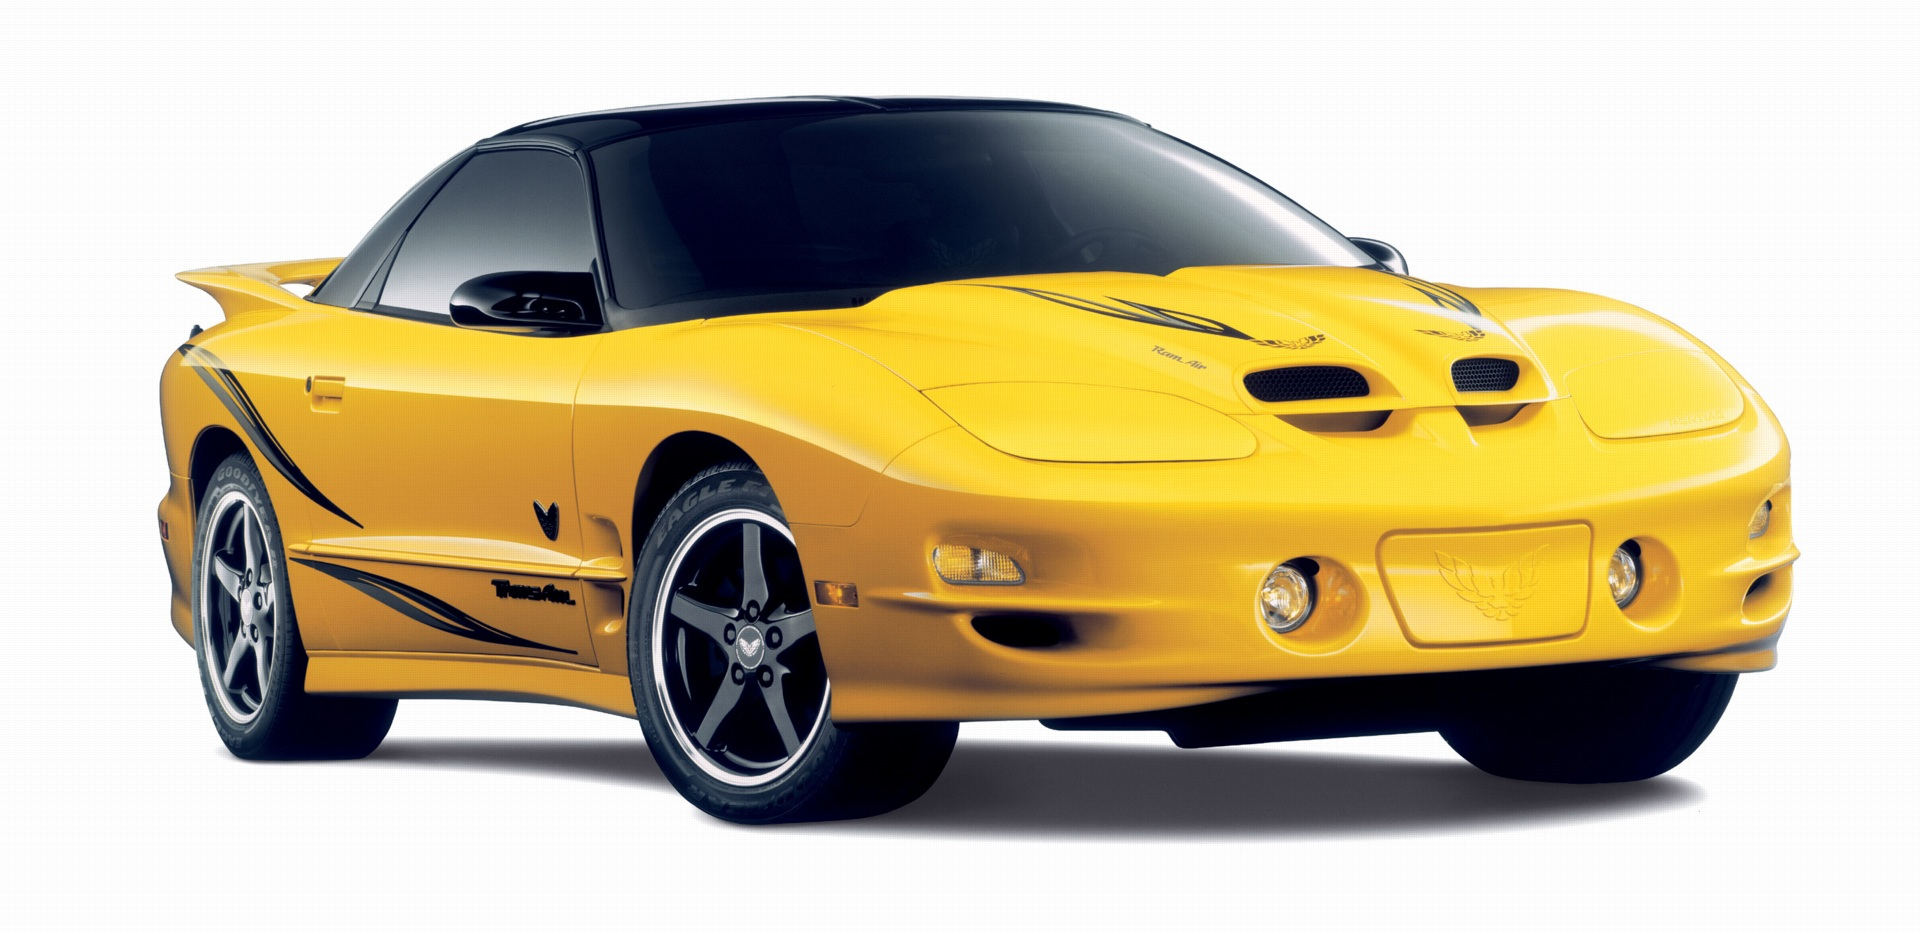 2002 Pontiac Firebird Trans Am History Pictures Value Auction 1998 Specs Sales Research And News